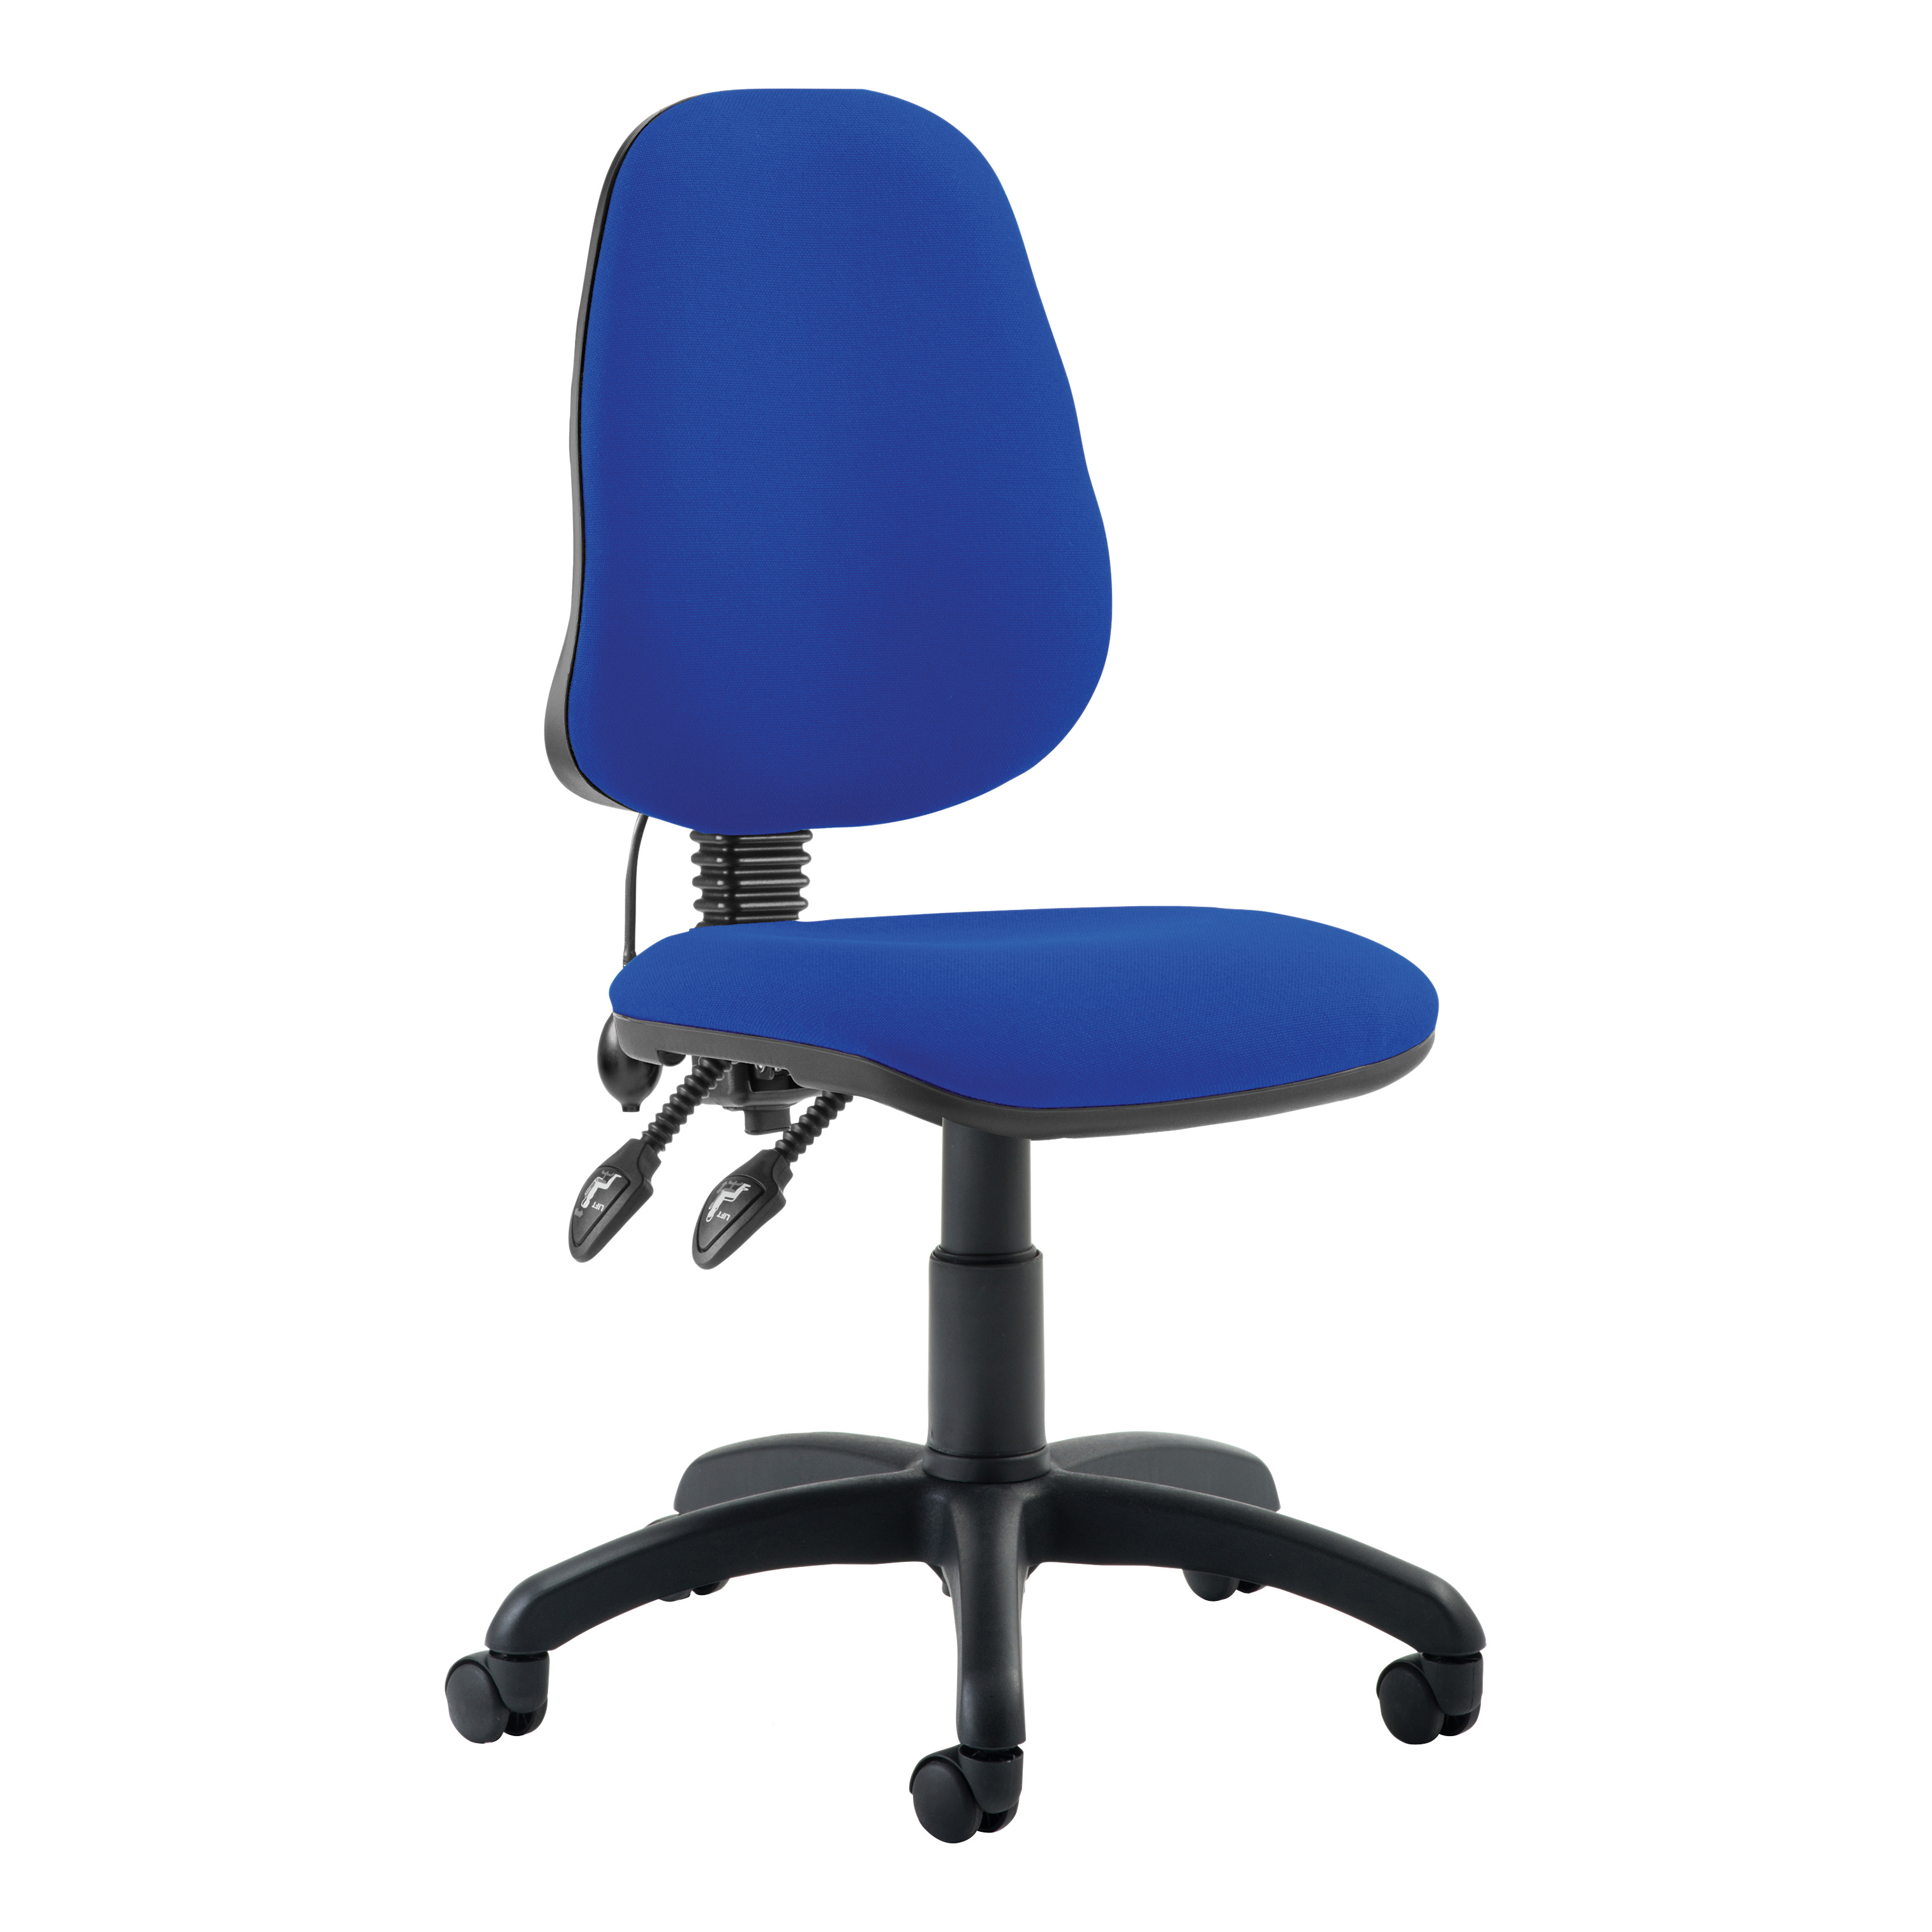 Trexus Lumbar High Back Permanent Contact Chair Blue 480x450x490-590mm Ref LM00002